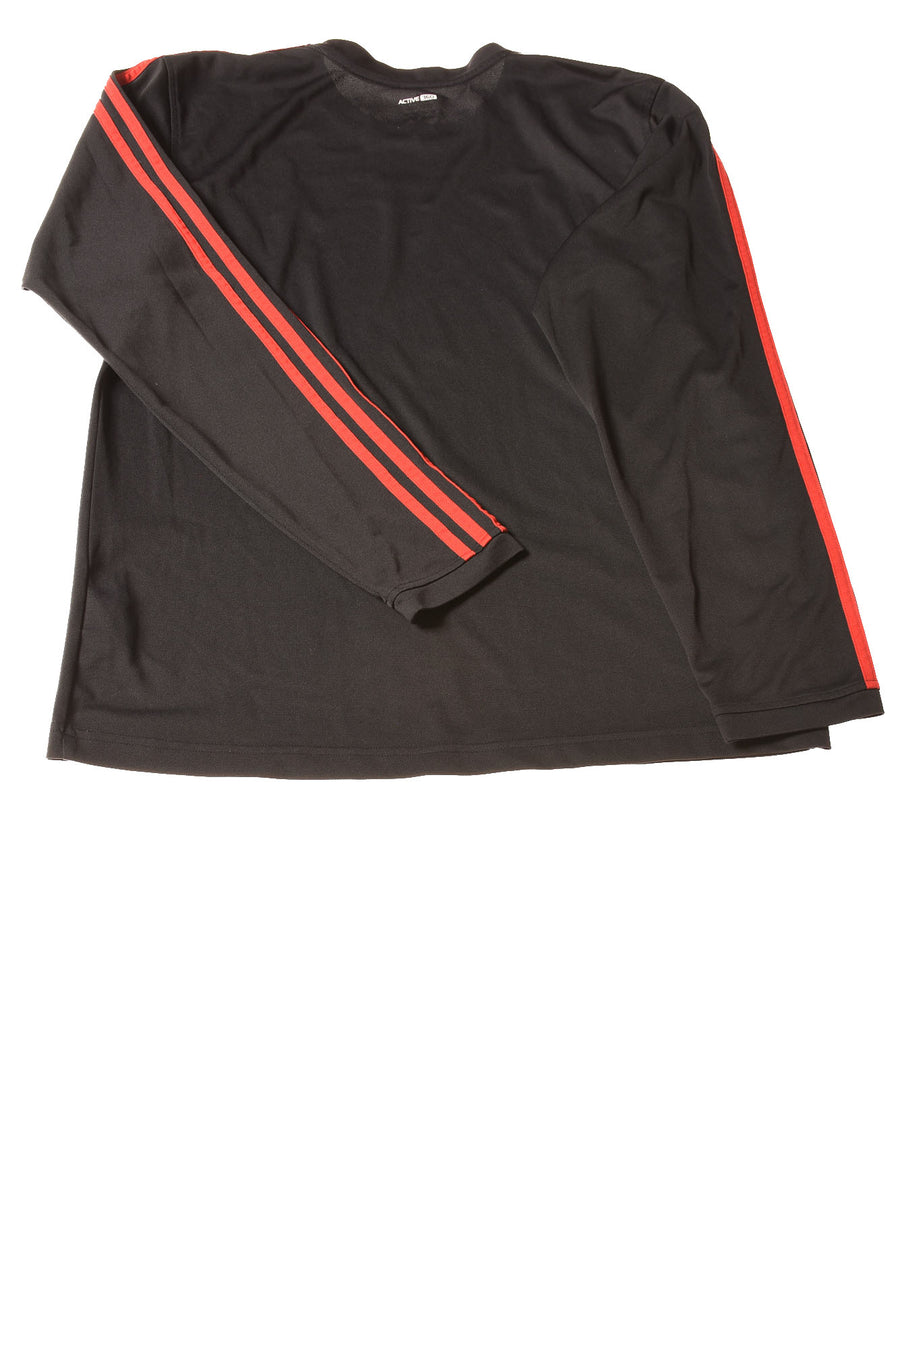 Men's Shirt By Adidas